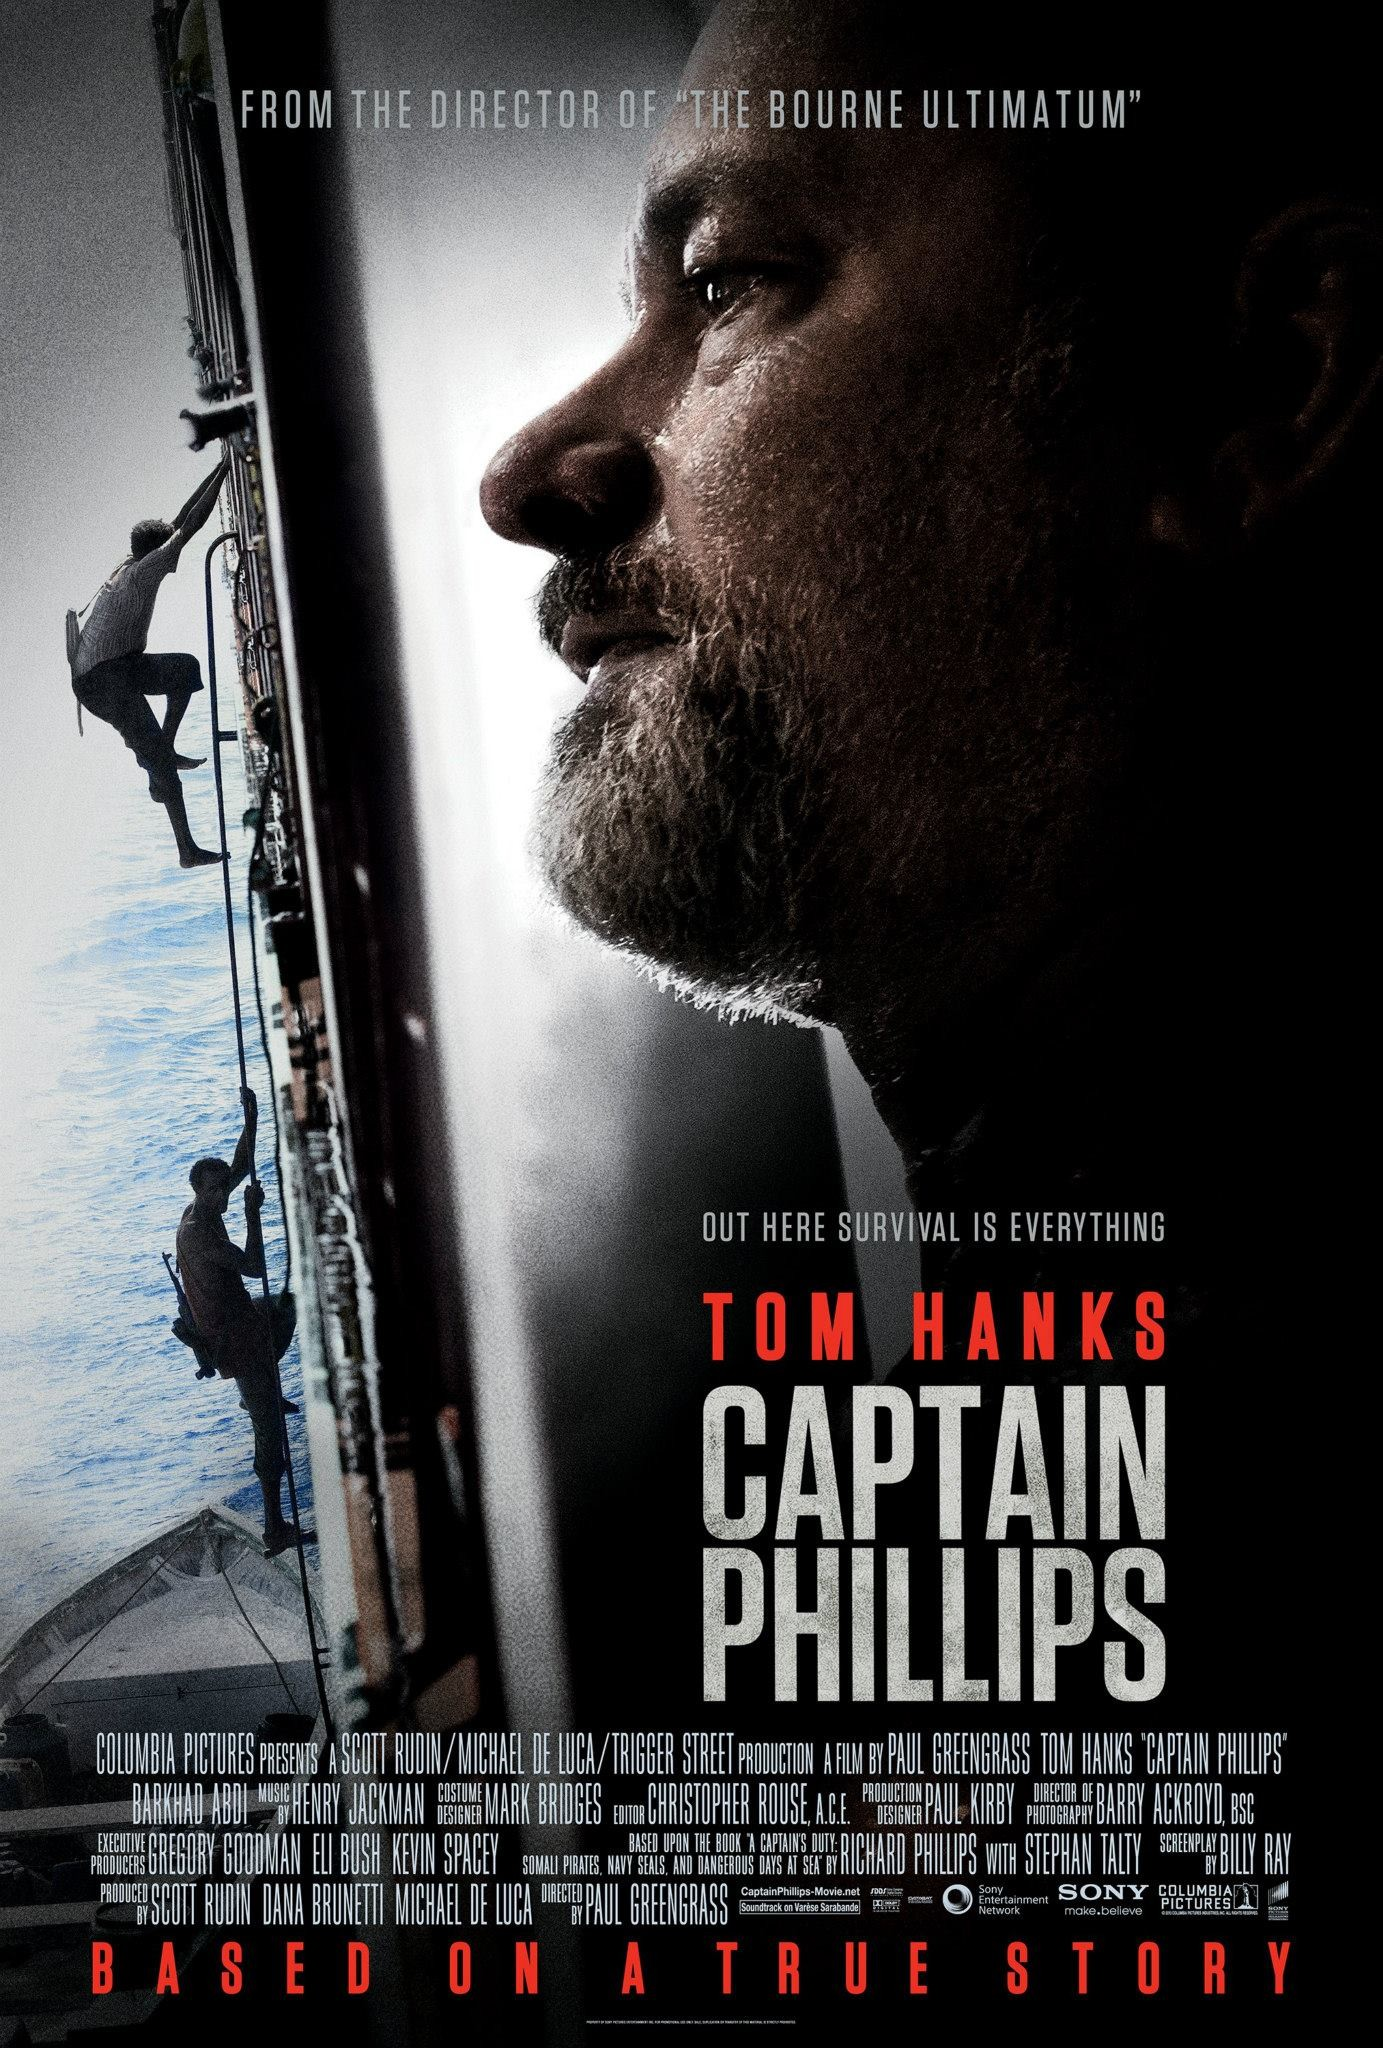 Captain Phillips-Official Poster Banner PROMO POSTER-03SETEMBRO2013